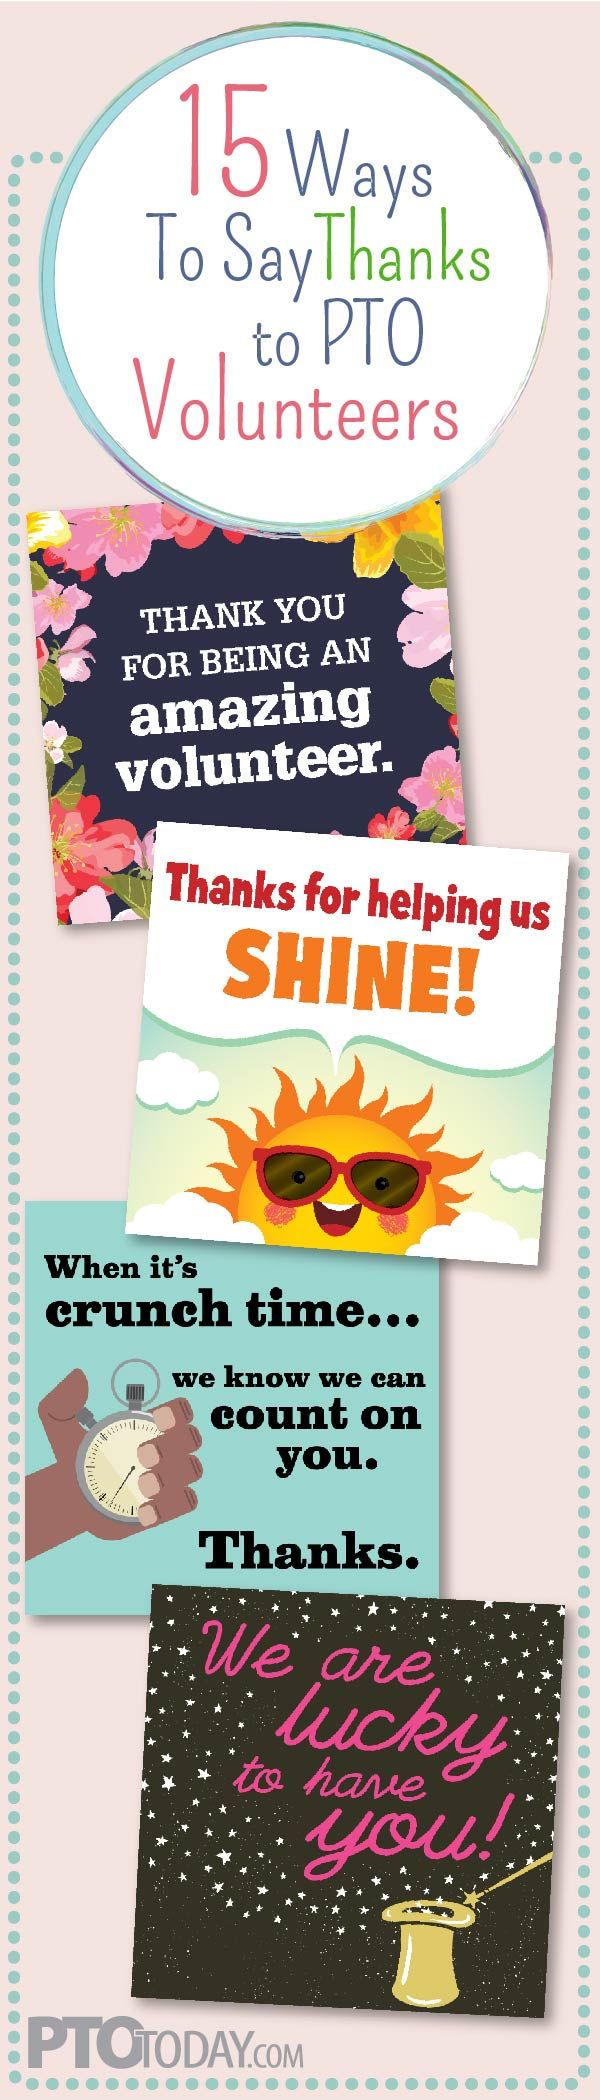 Get 15 new (and FREE!) social media graphics to say thanks to volunteers!